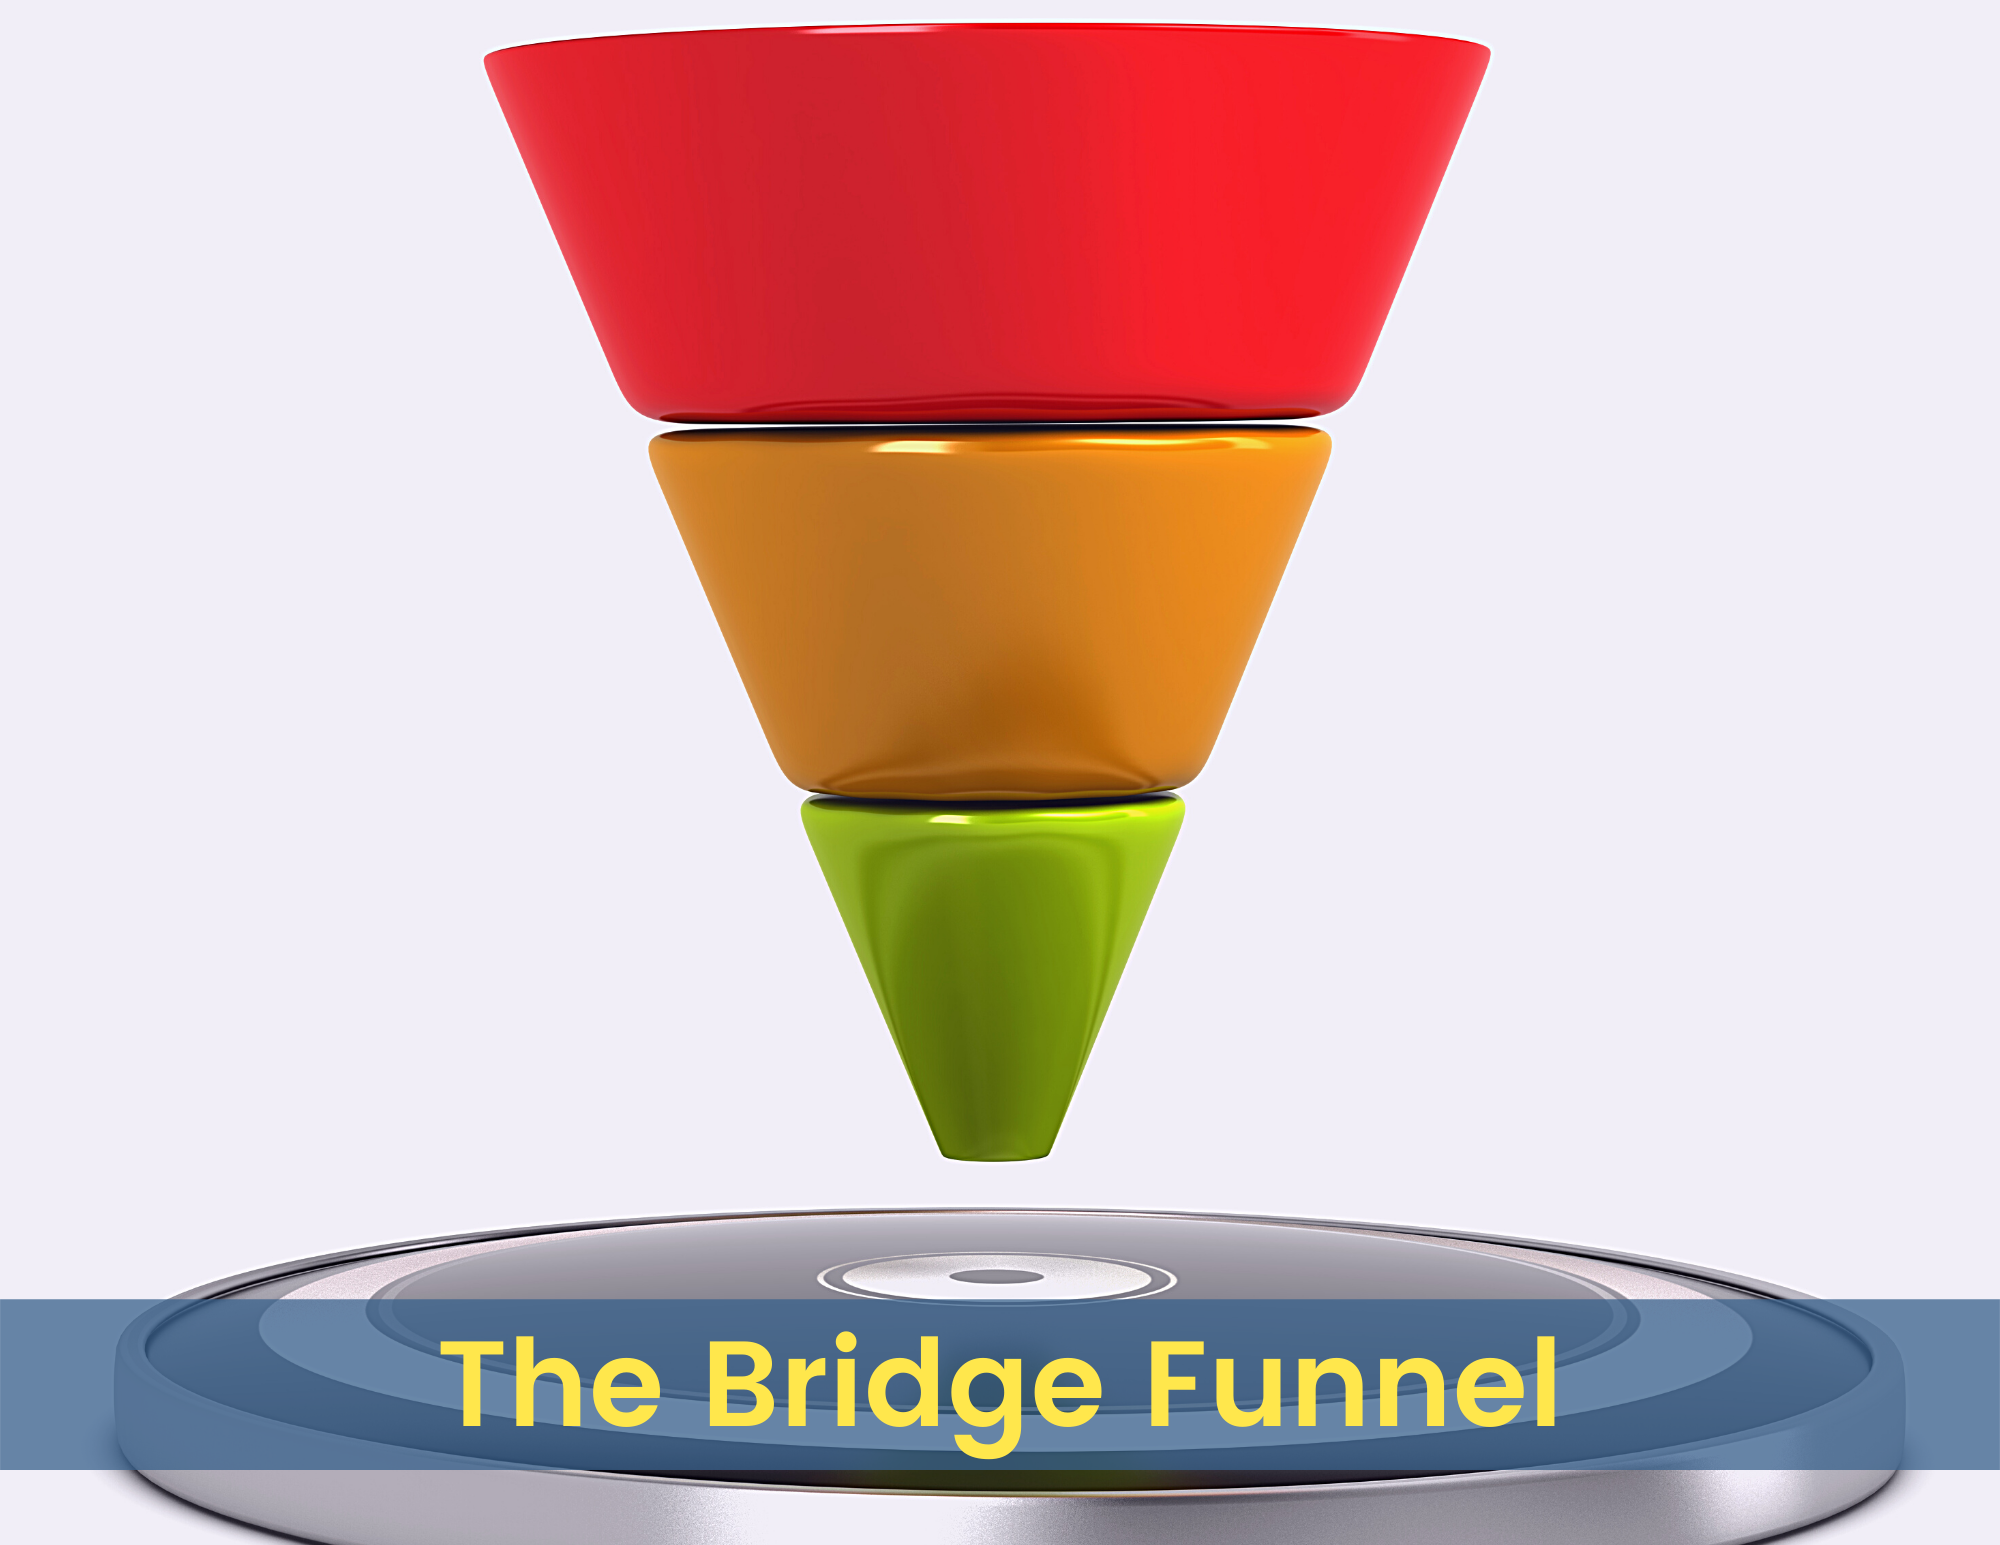 The Bridge Funnel